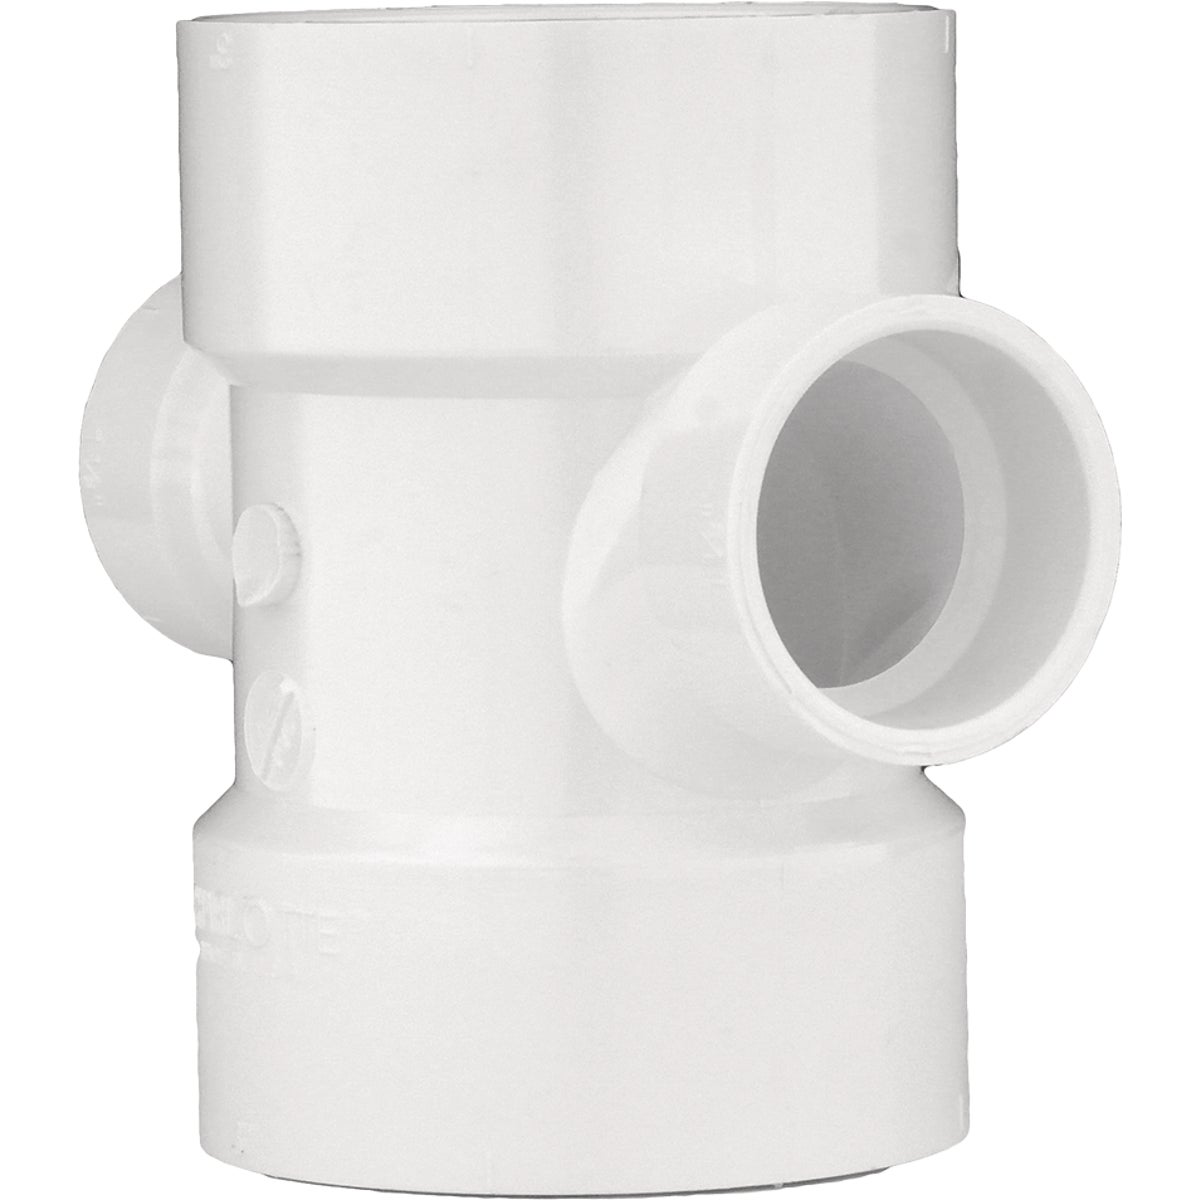 Genova Products 73542 Reducing Double Sanitary Tee Pipe Fitting, 4